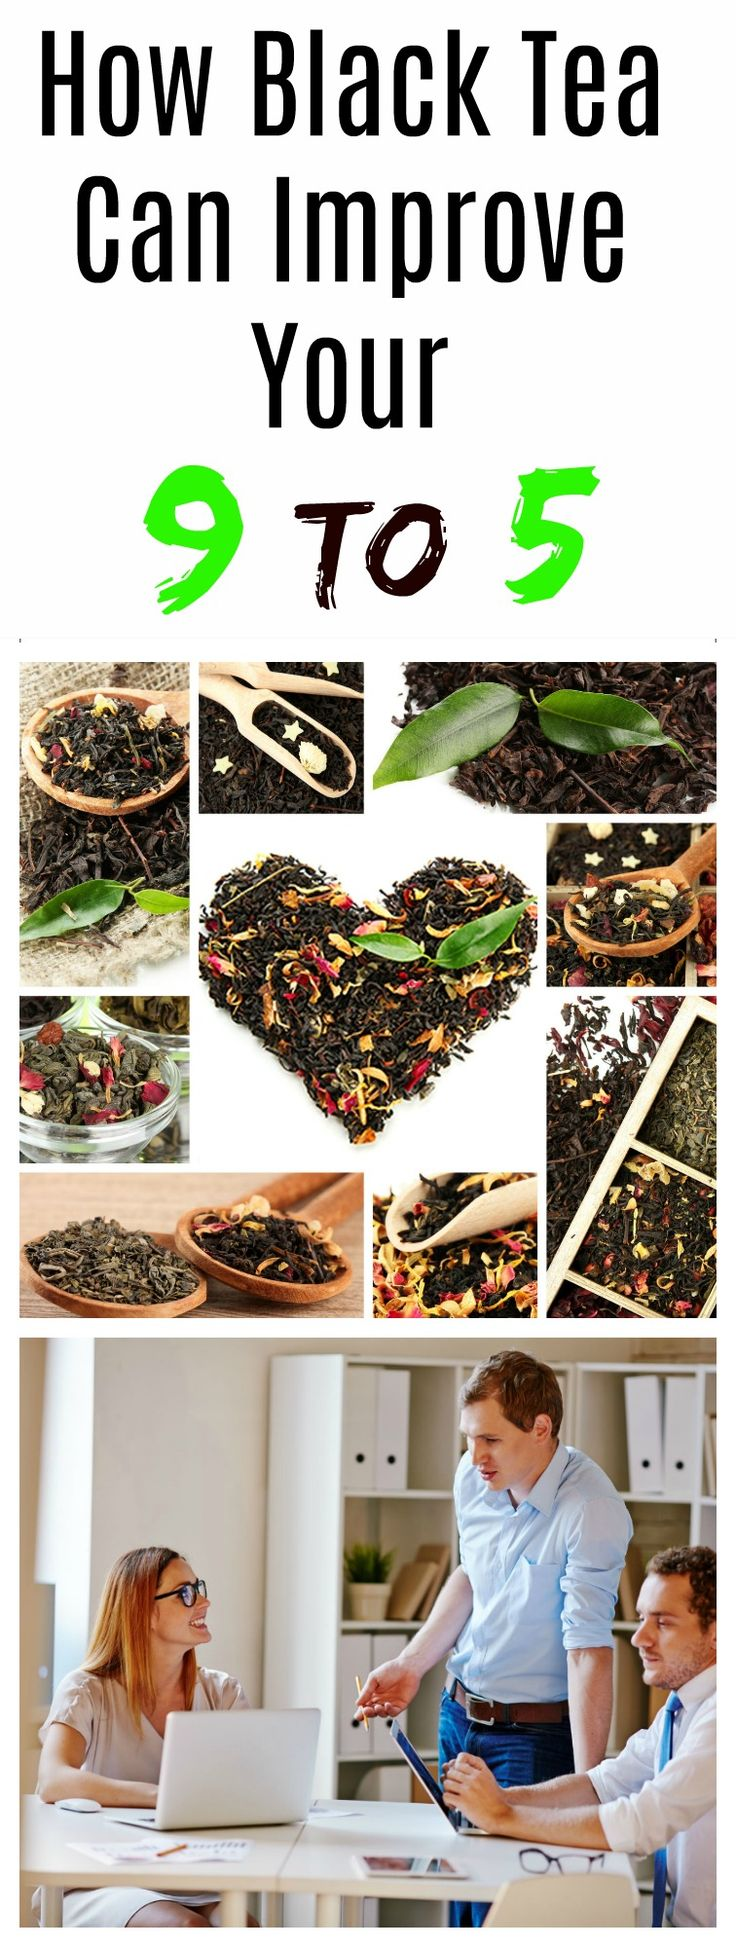 Black tea offers health benefits that may aid with asthma, cardiovascular conditions, guard against strokes as well as reduce cholesterol. Black tea boasts natural detox & antibacterial properties, aiding in dental health. Supports strong bones. Research lists many more possible health benefits of consuming loose leaf black tea, which is more nutritious & flavorful than tea bags. Many rely on black tea for mental clarity & stimulation- & not just due to caffeine content. Organic black loose…